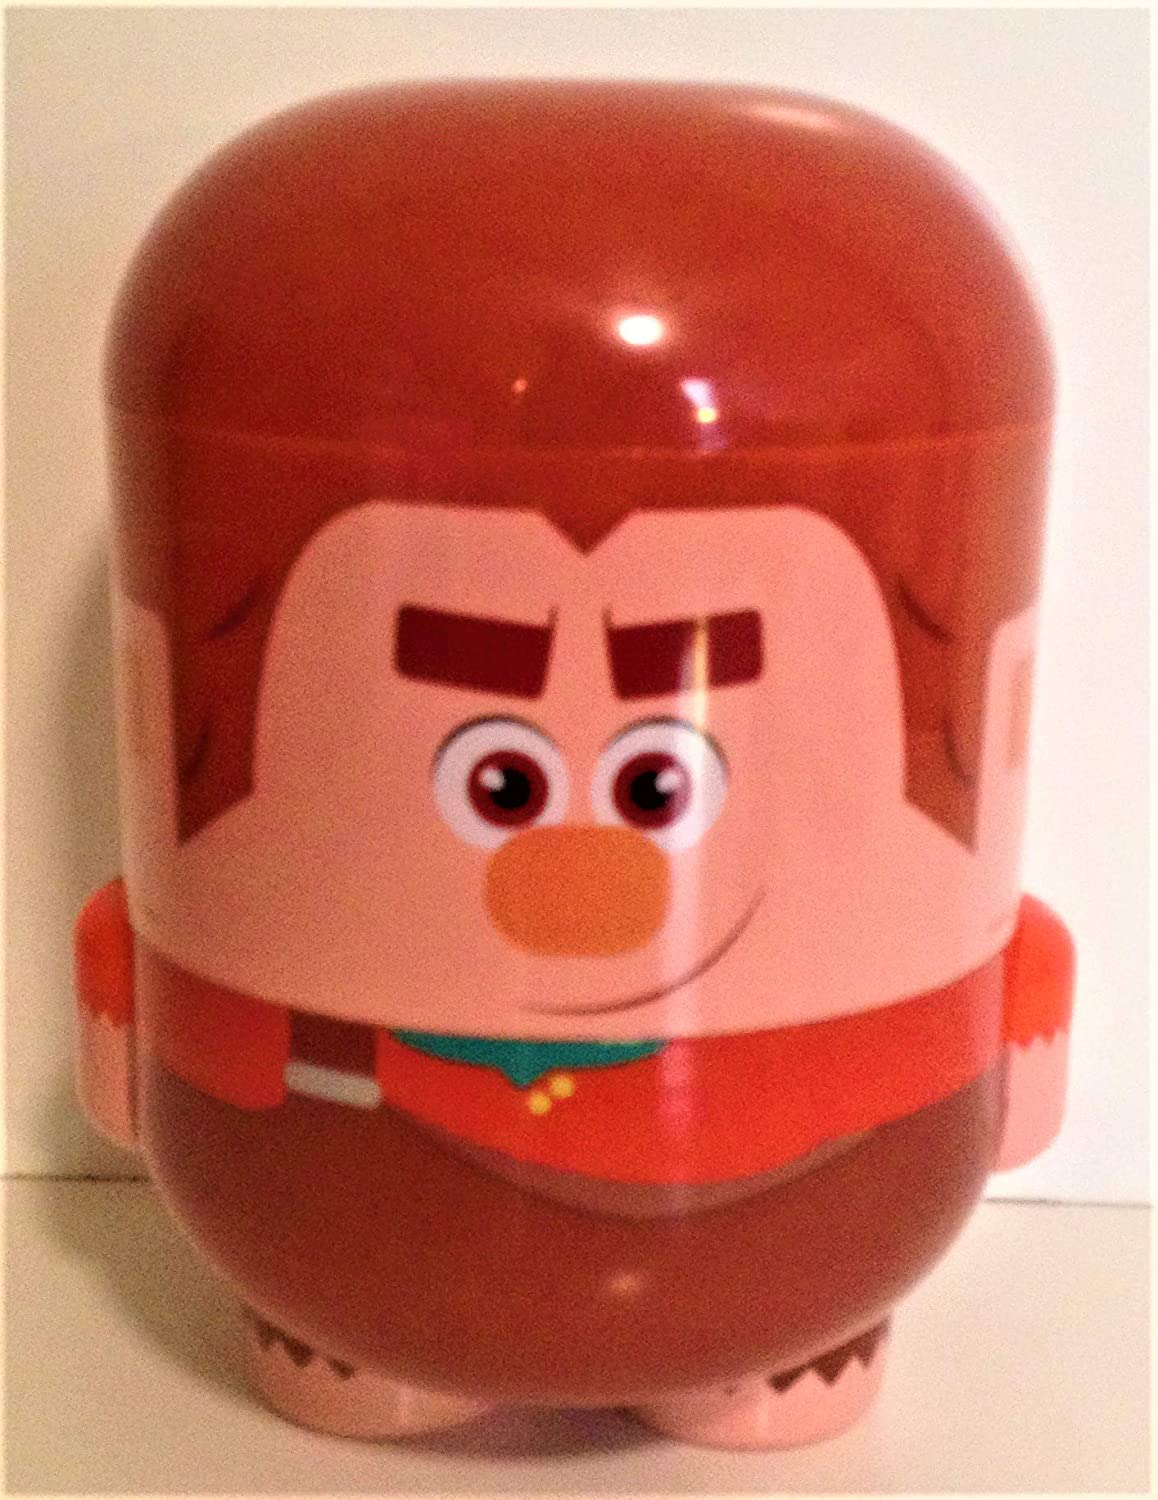 Ralph Breaks the Internet Movie Theater Exclusive 85 oz Popcorn Eater Ralph